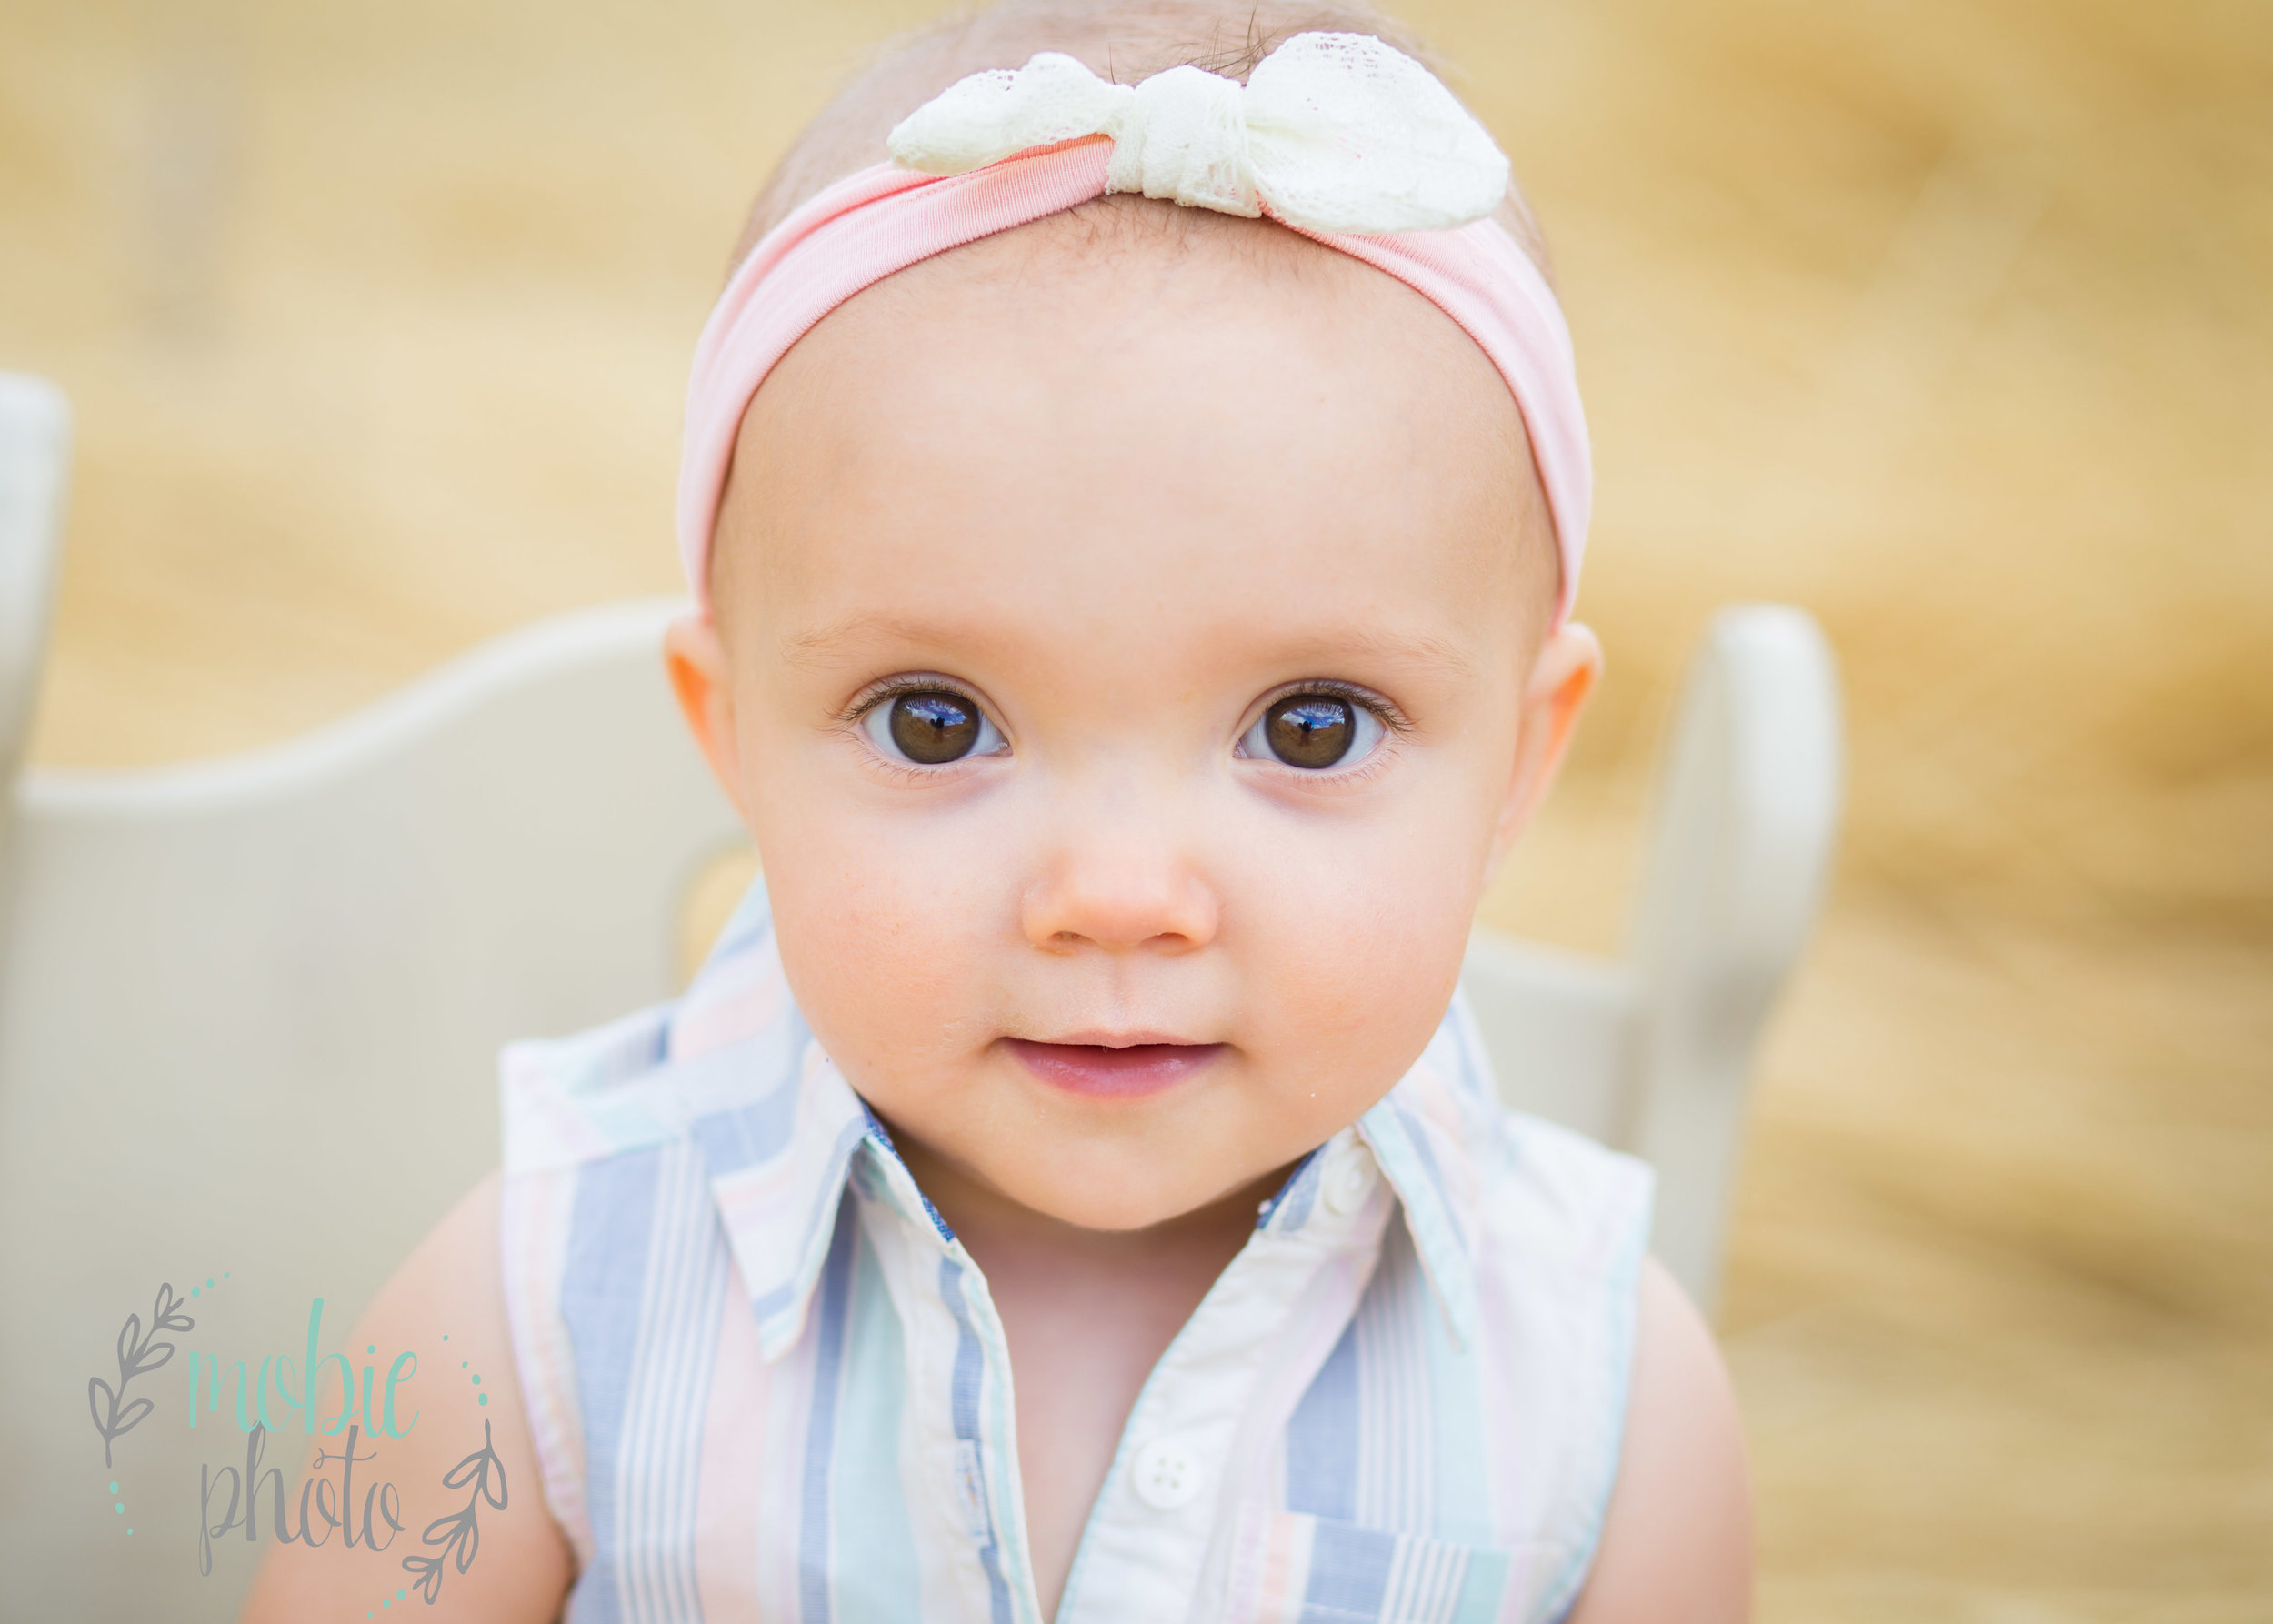 Baby close up pictures